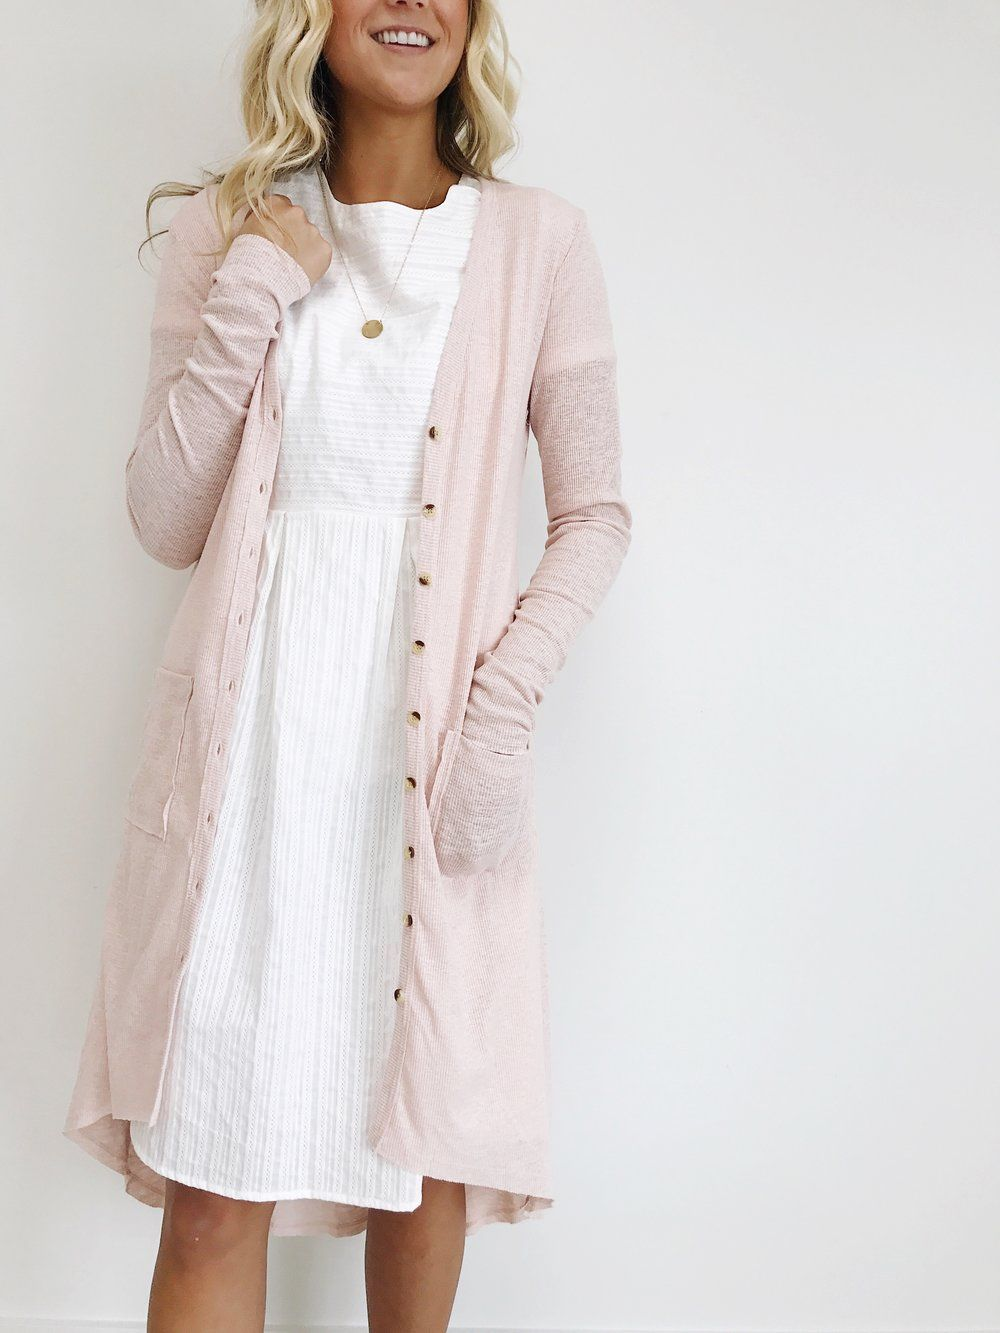 Love out loud cardigan roolee i donut typically wear dresses but i